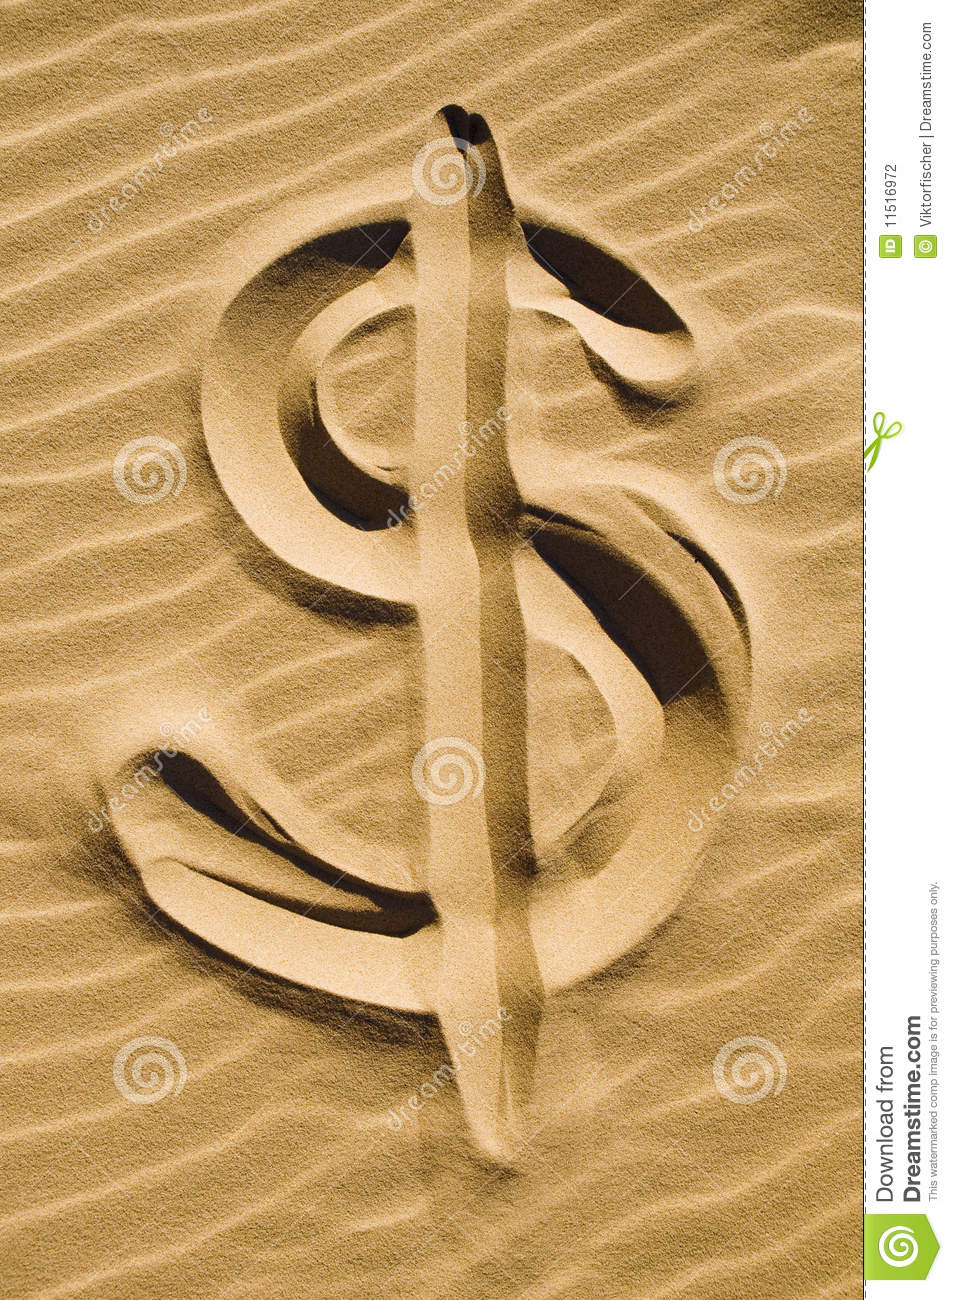 Dollar sign in the sand